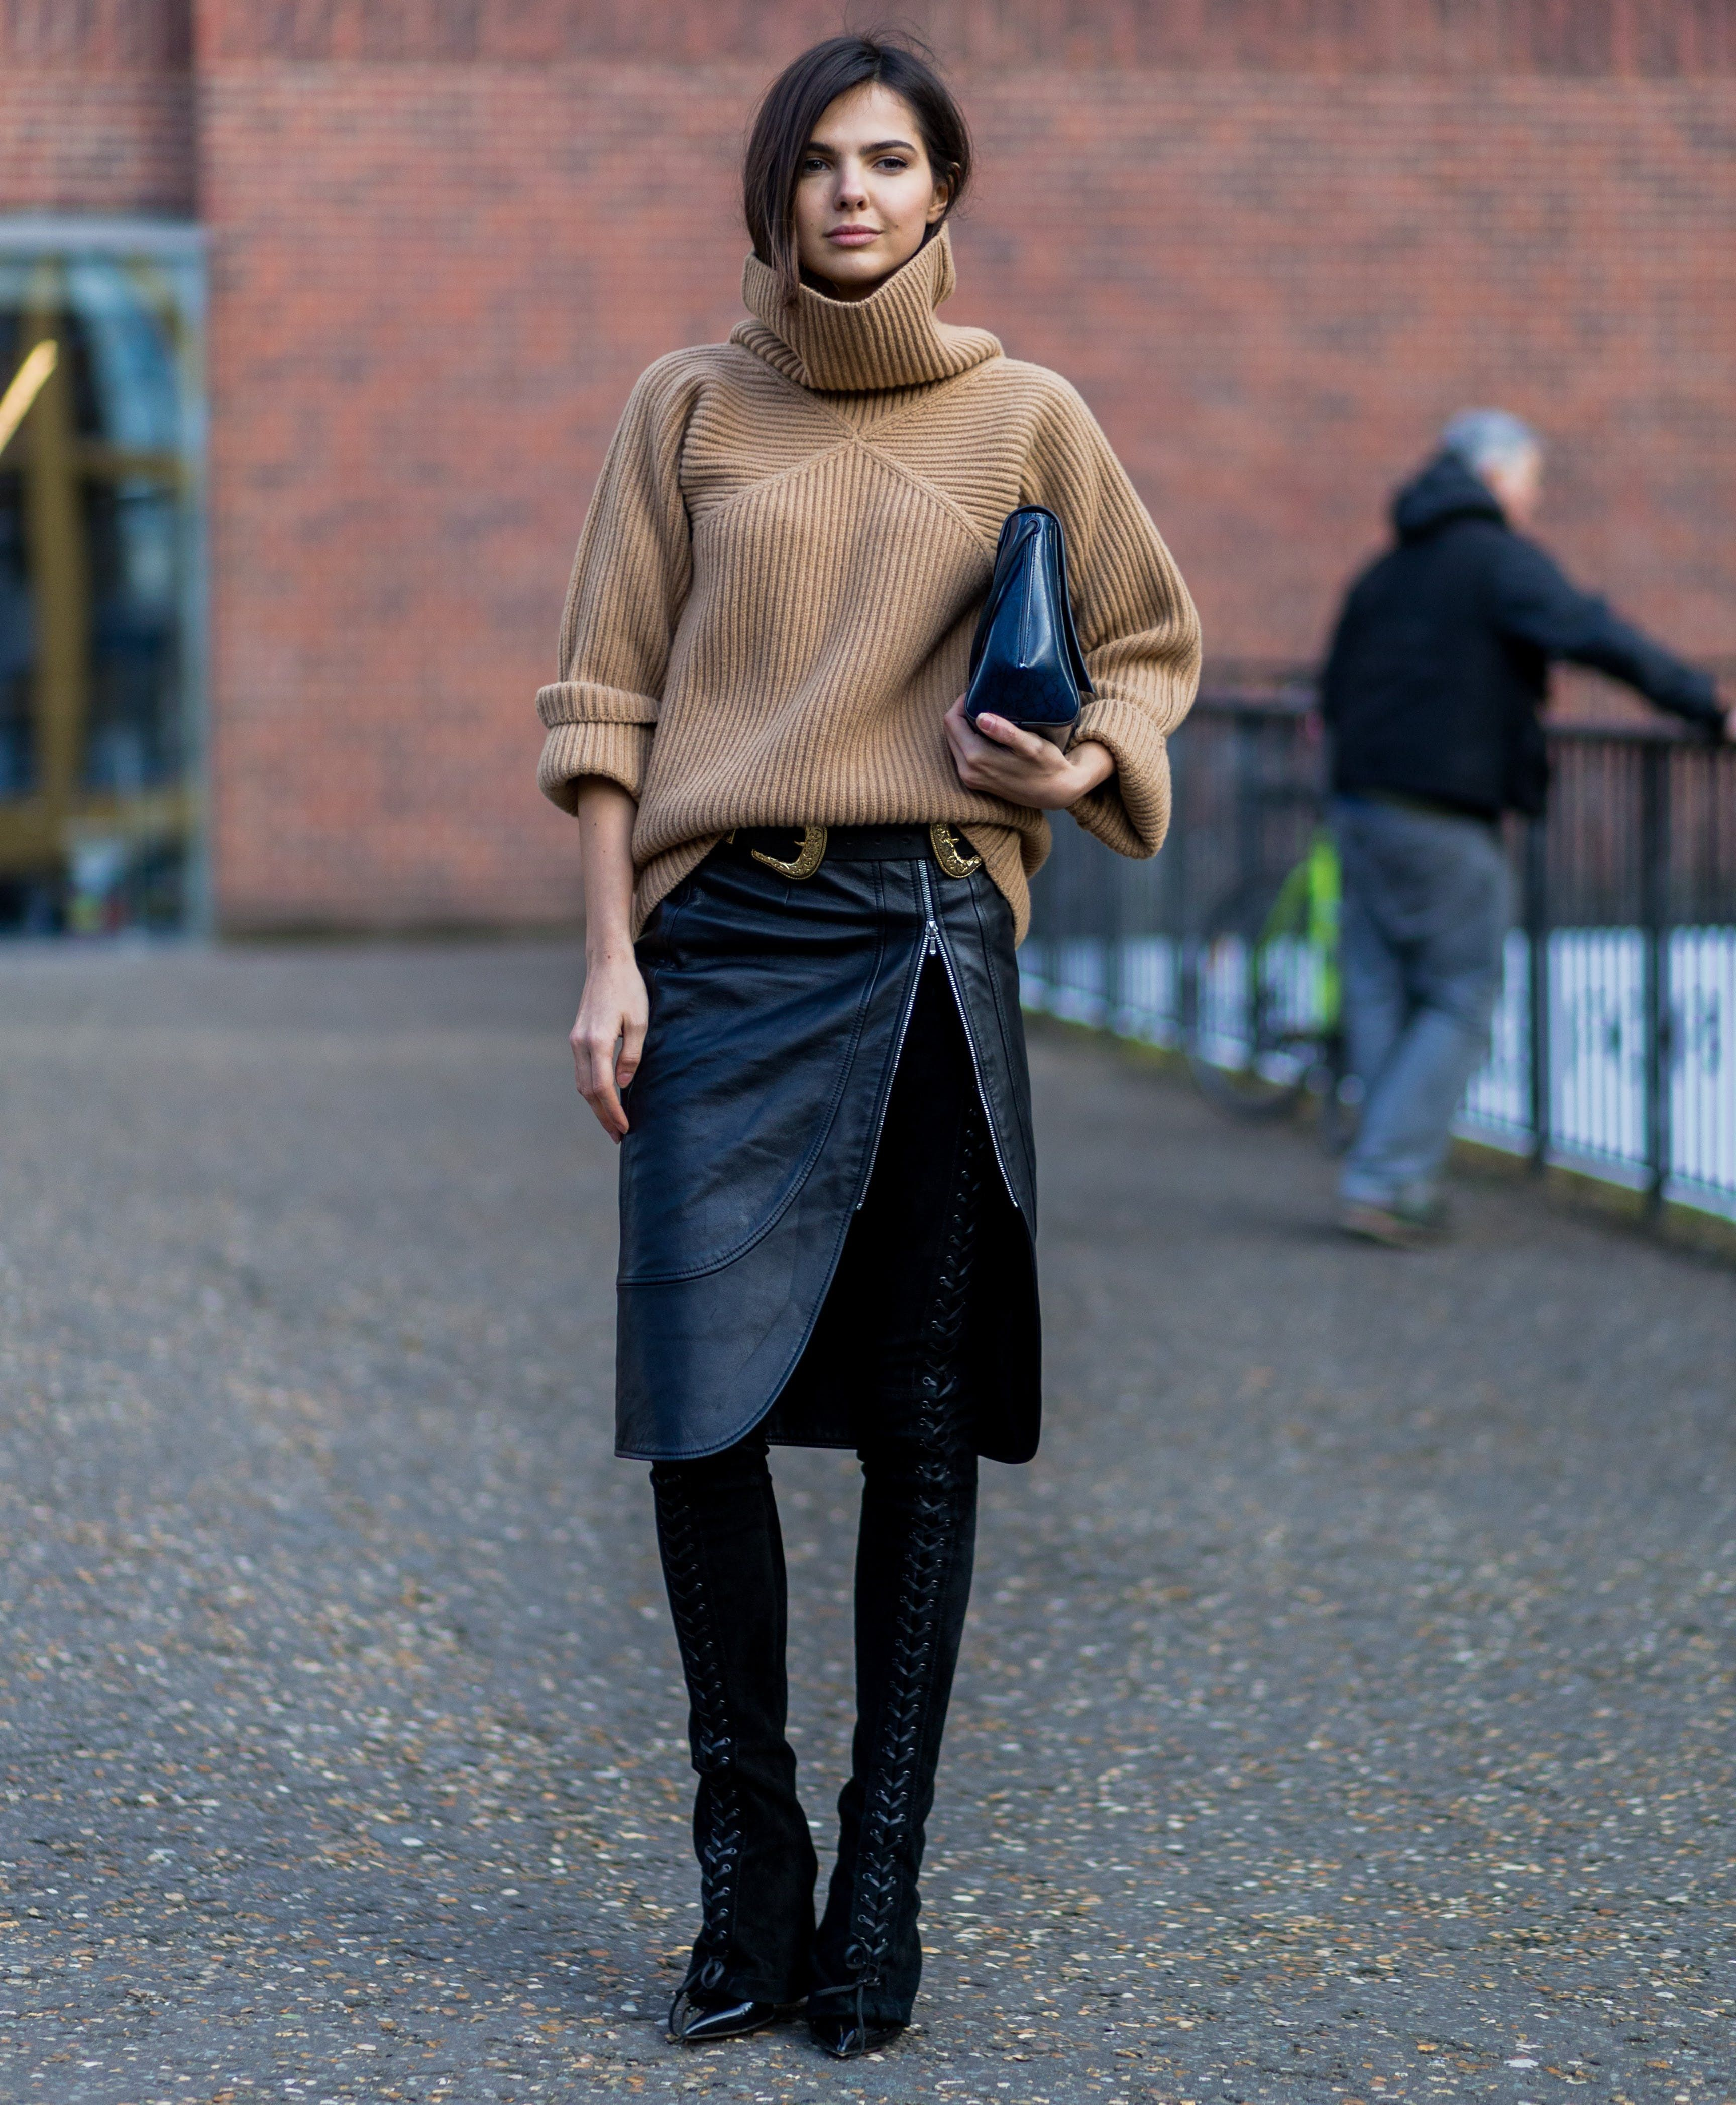 48e6d7d0607 12 Fashion Trends to Try Every Month of 2018 - PureWow